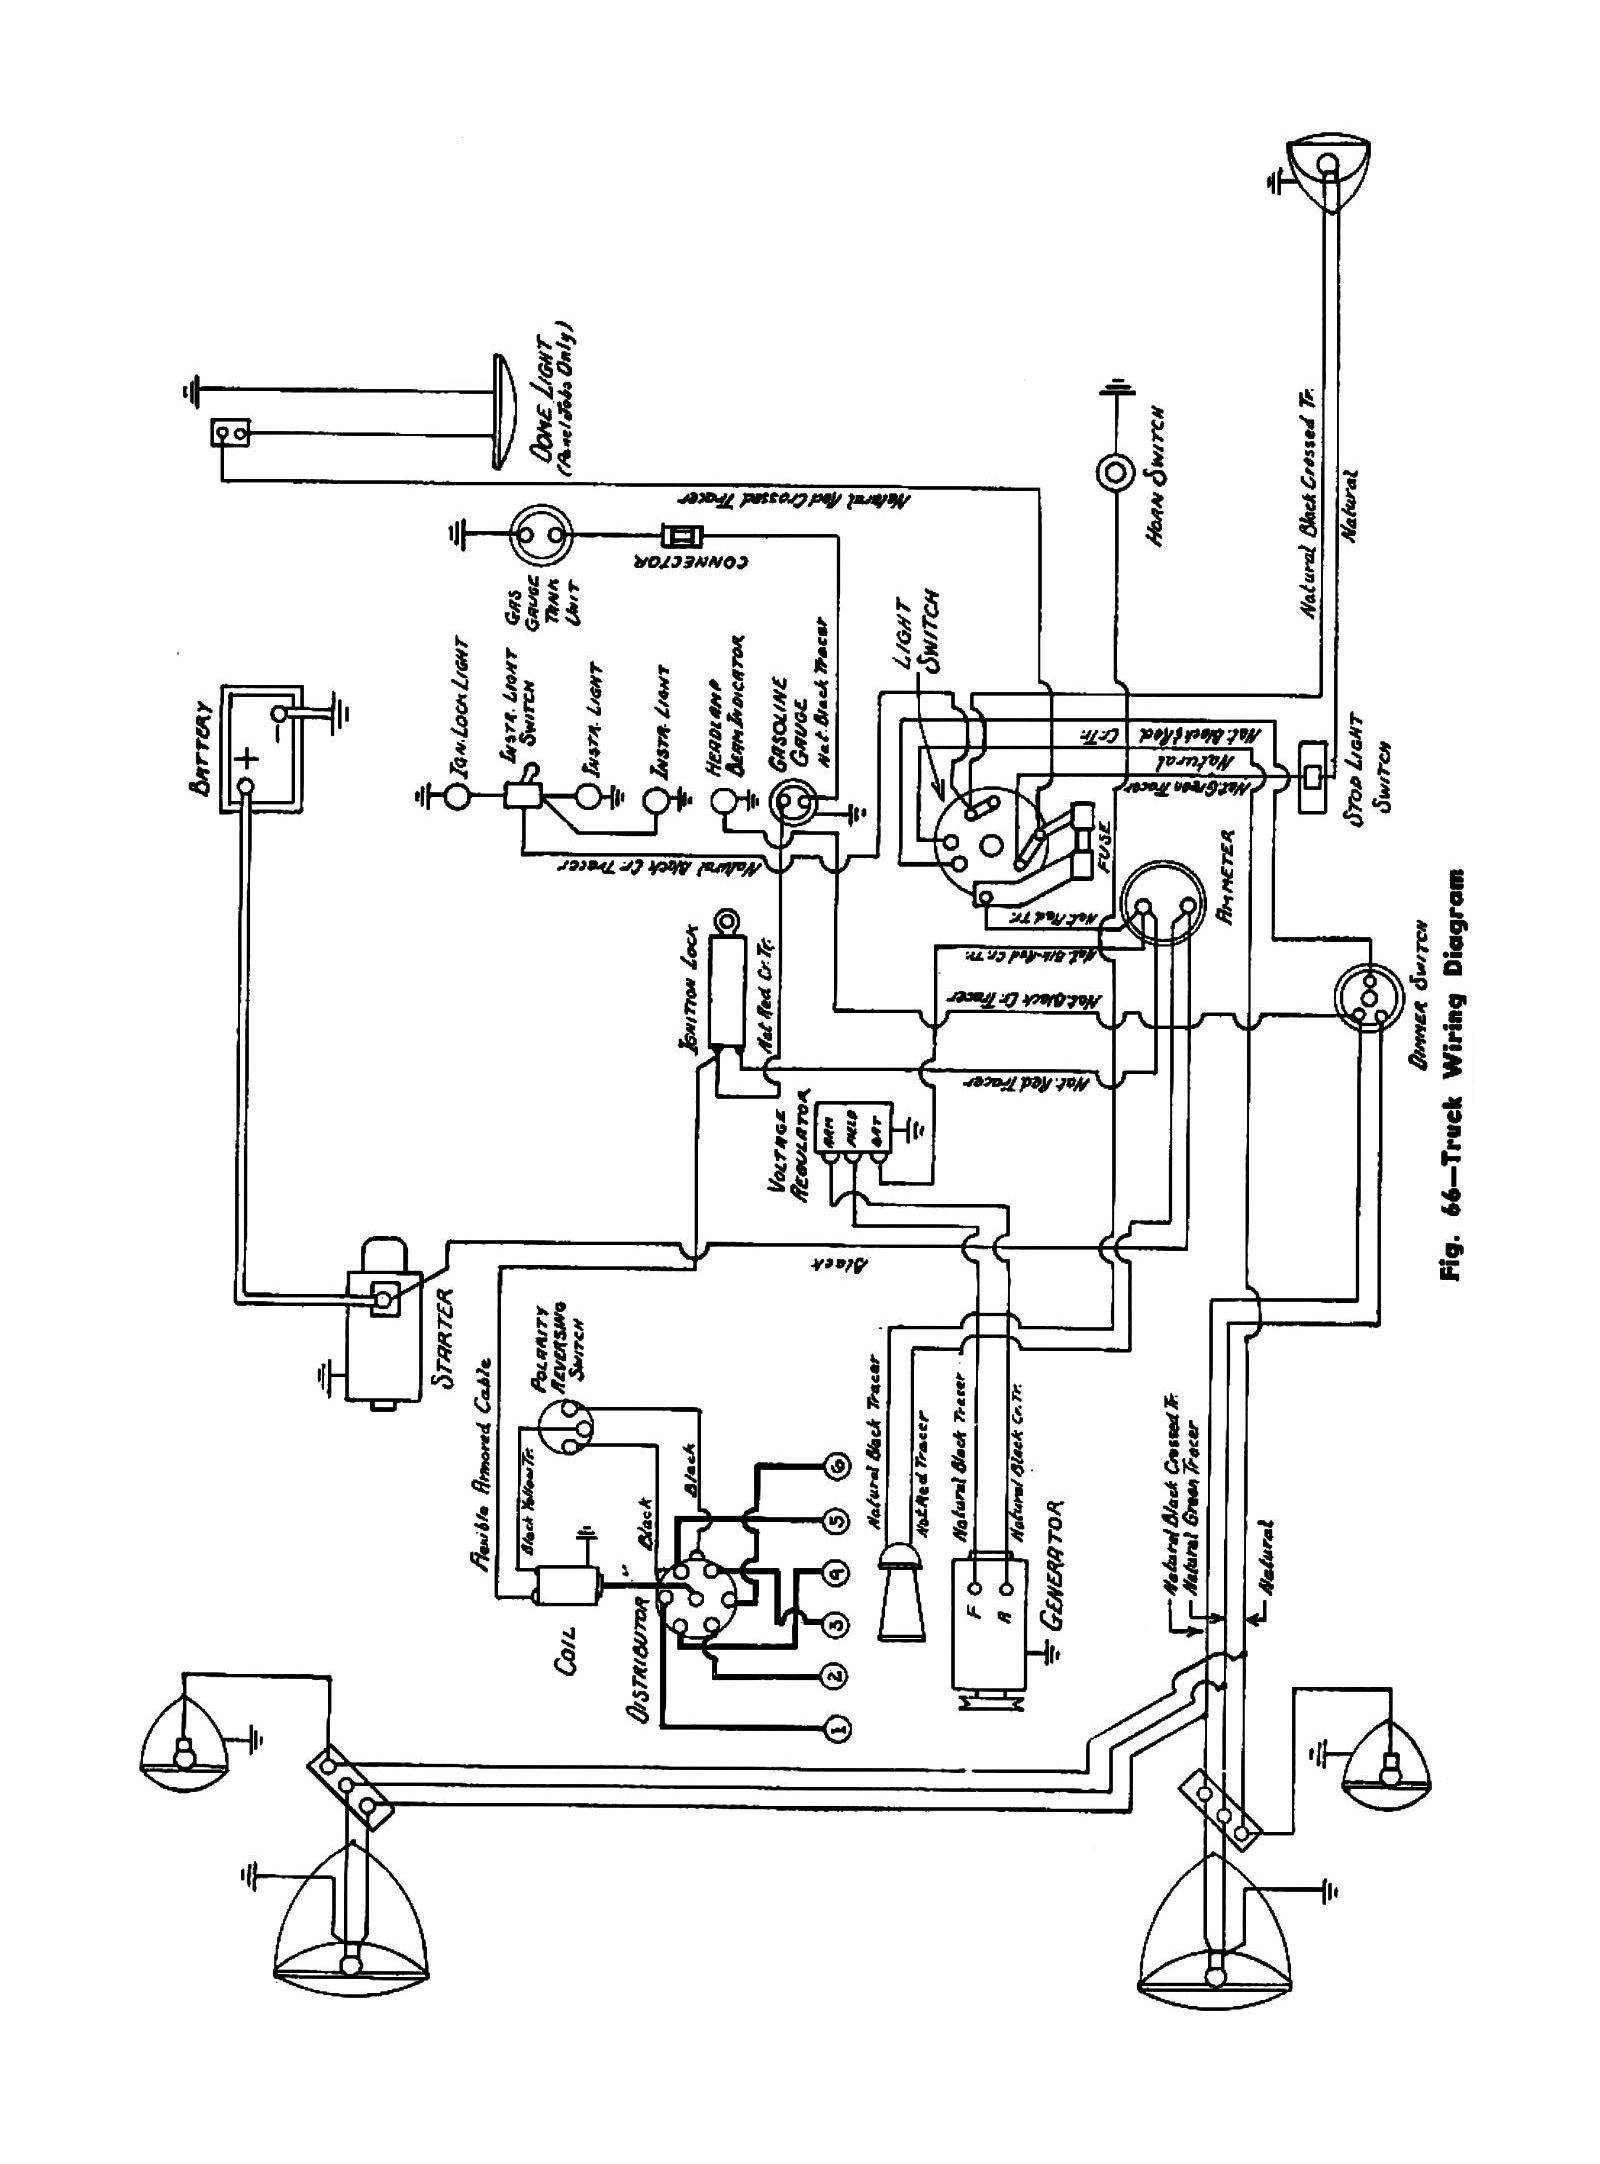 1957 chevy 3100 wiring harness data wiring diagram update rh 18 asdcc petersen guitars de